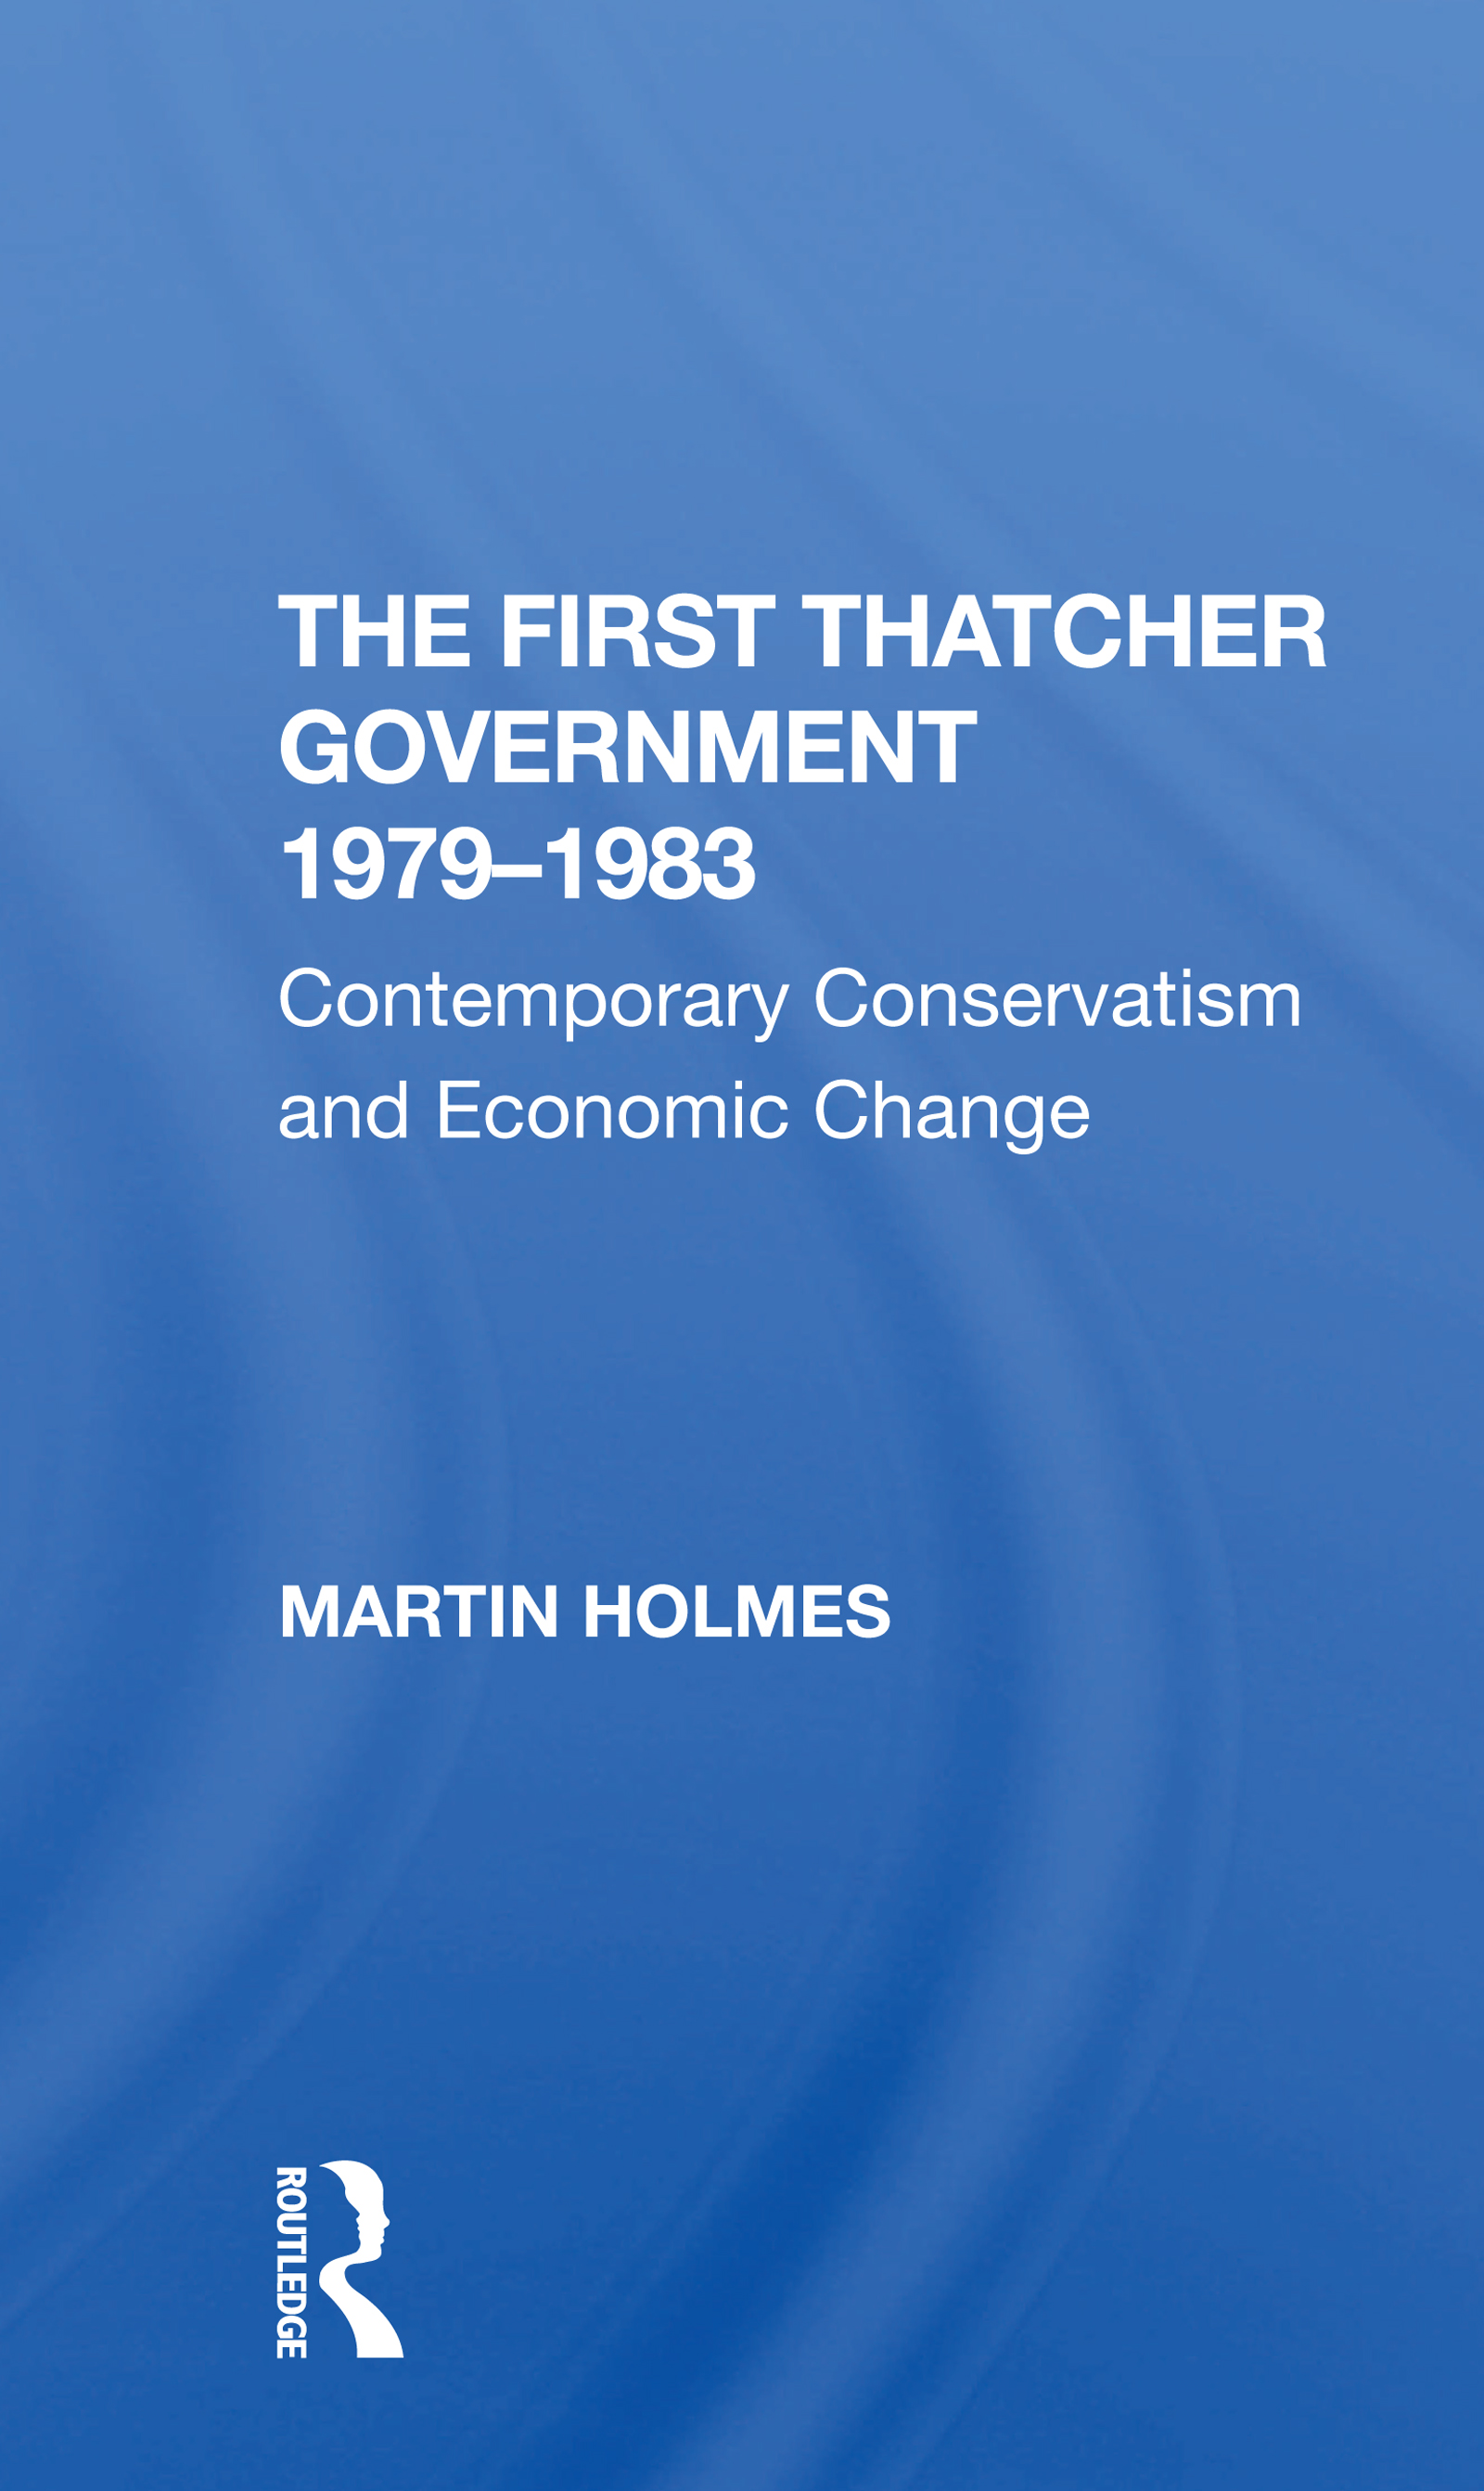 The First Thatcher Government, 1979-1983